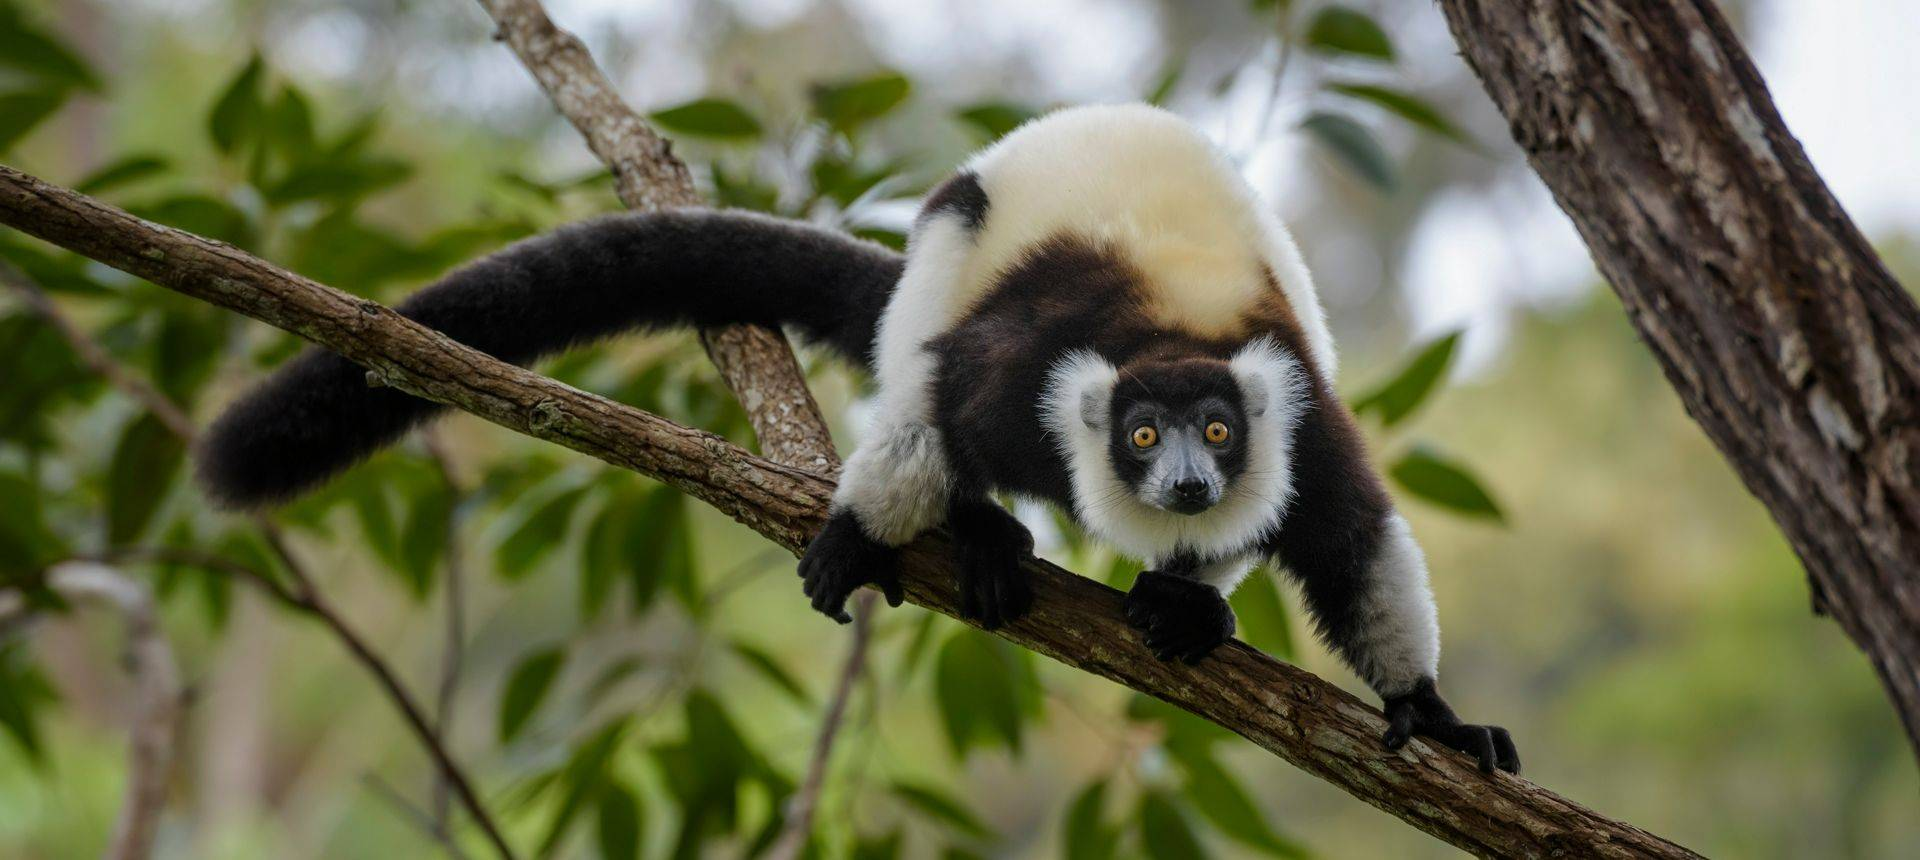 Black And White Ruffed Lemur, Madagascar Shutterstock 796703422